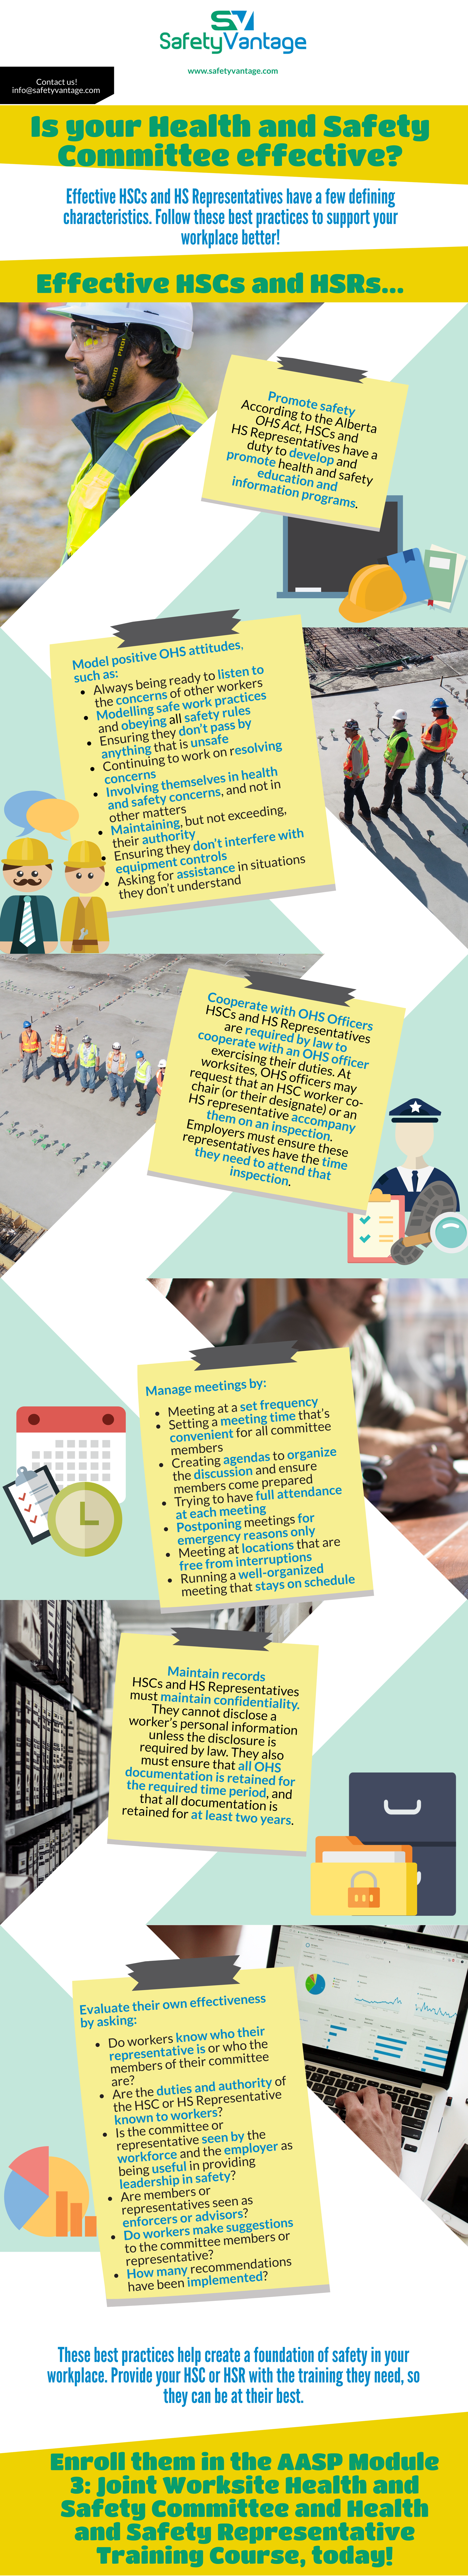 InfoGraphic - Effective HSCs and HSRs have defining characteristics. Follow these best practices to support your workplace better!